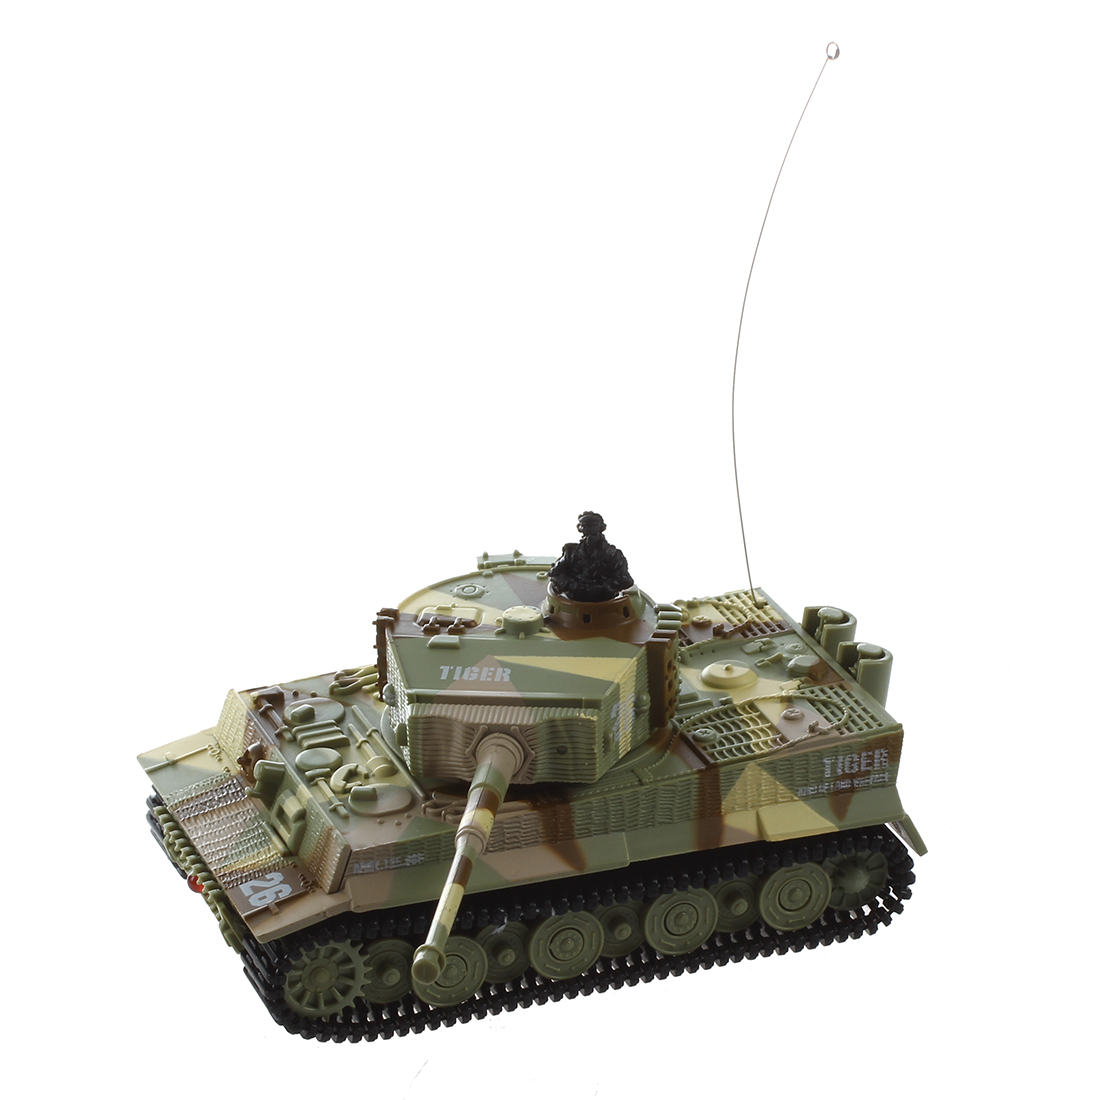 New Mini 1:72 49MHz R/C Radio Remote Control Tiger Tank 20M Kids Toy Gift Army (Yellow)